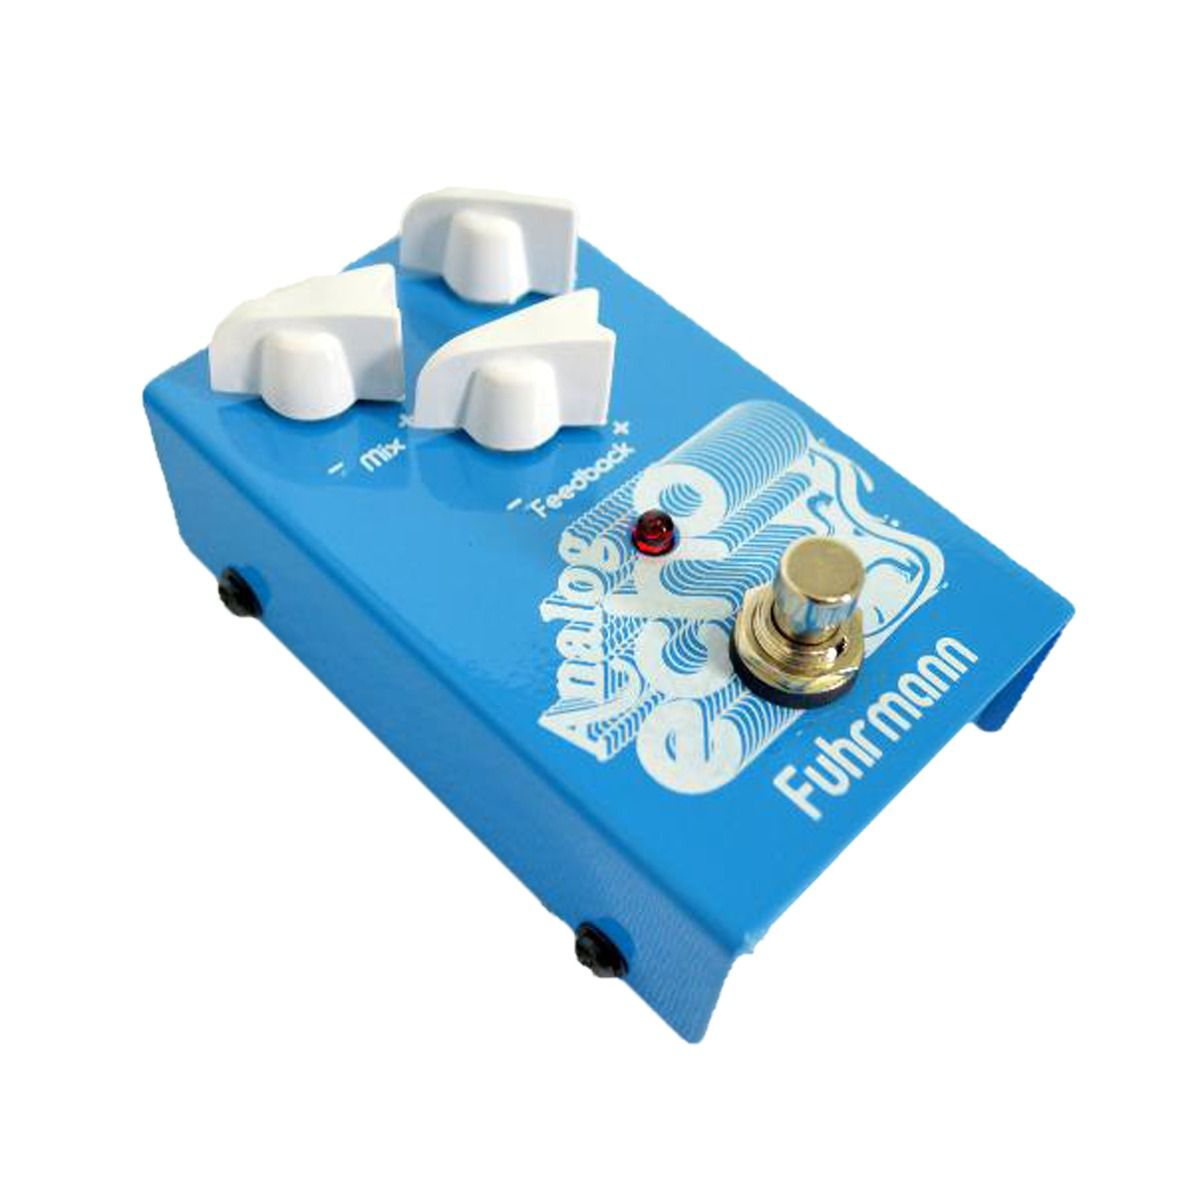 Pedal Fuhrmann Analog Echo Delay